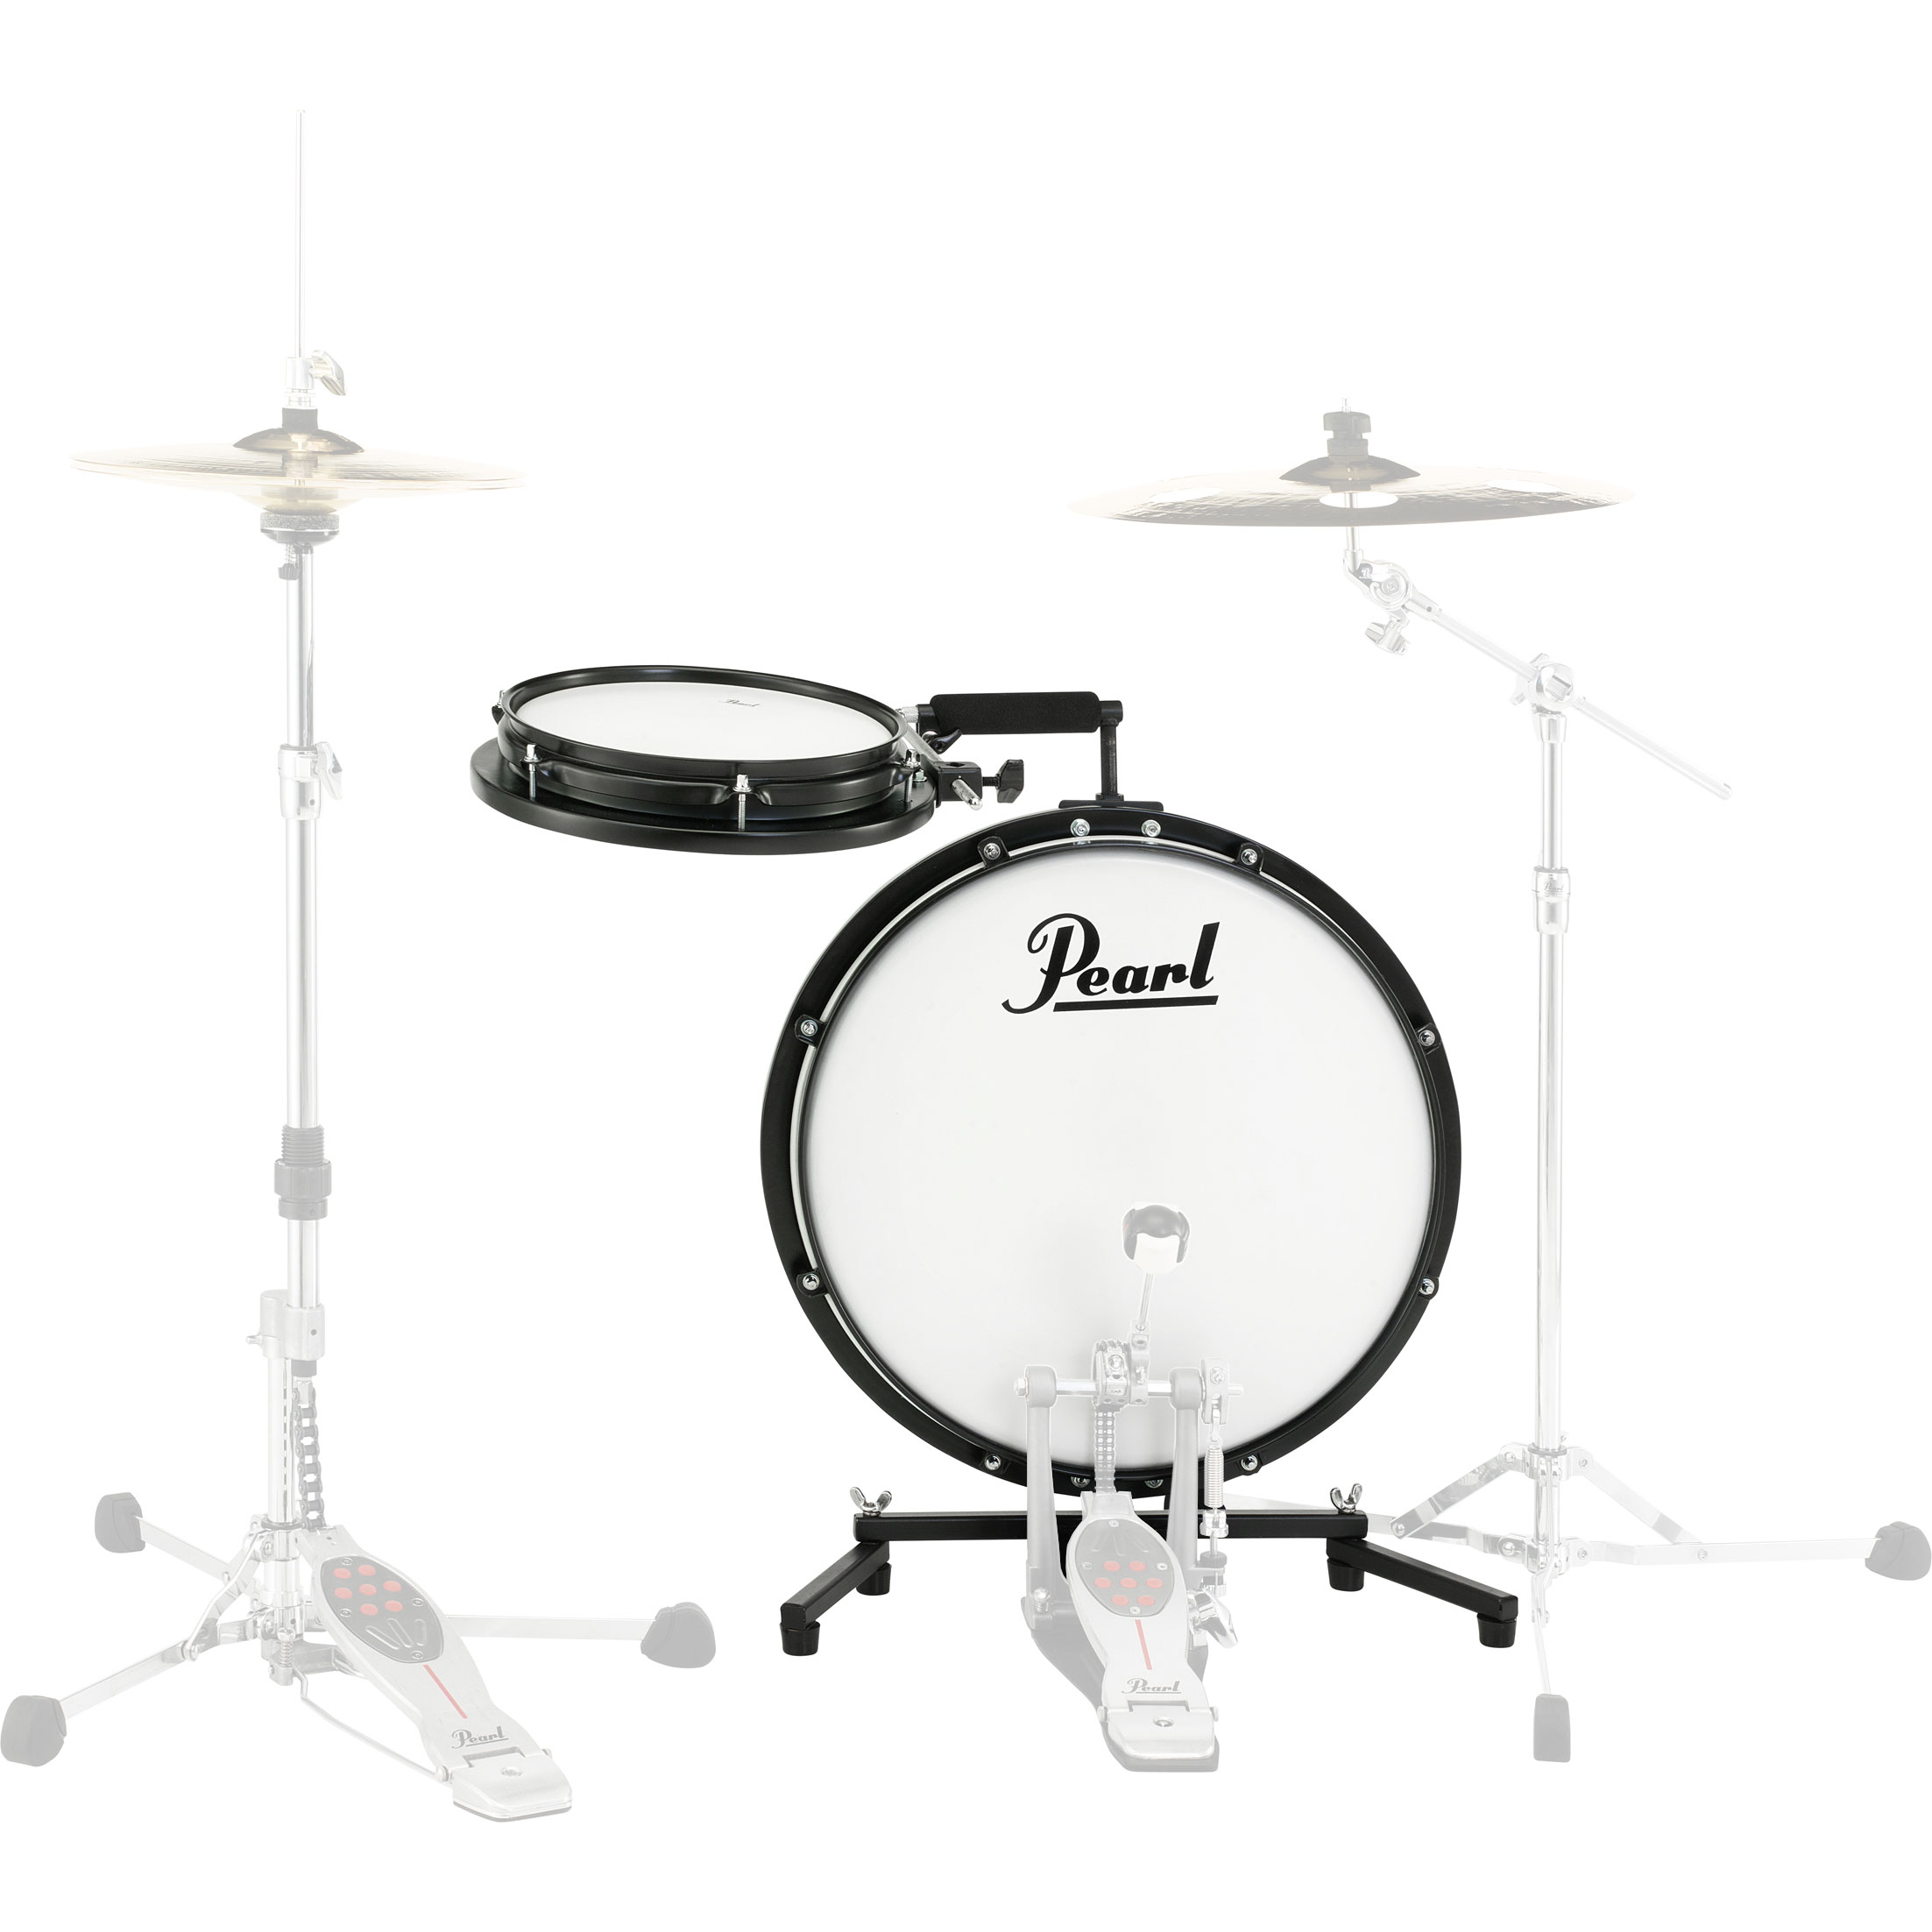 "Pearl Compact Traveler 2-Piece Drum Set (18"" Bass, 10"" Snare)"